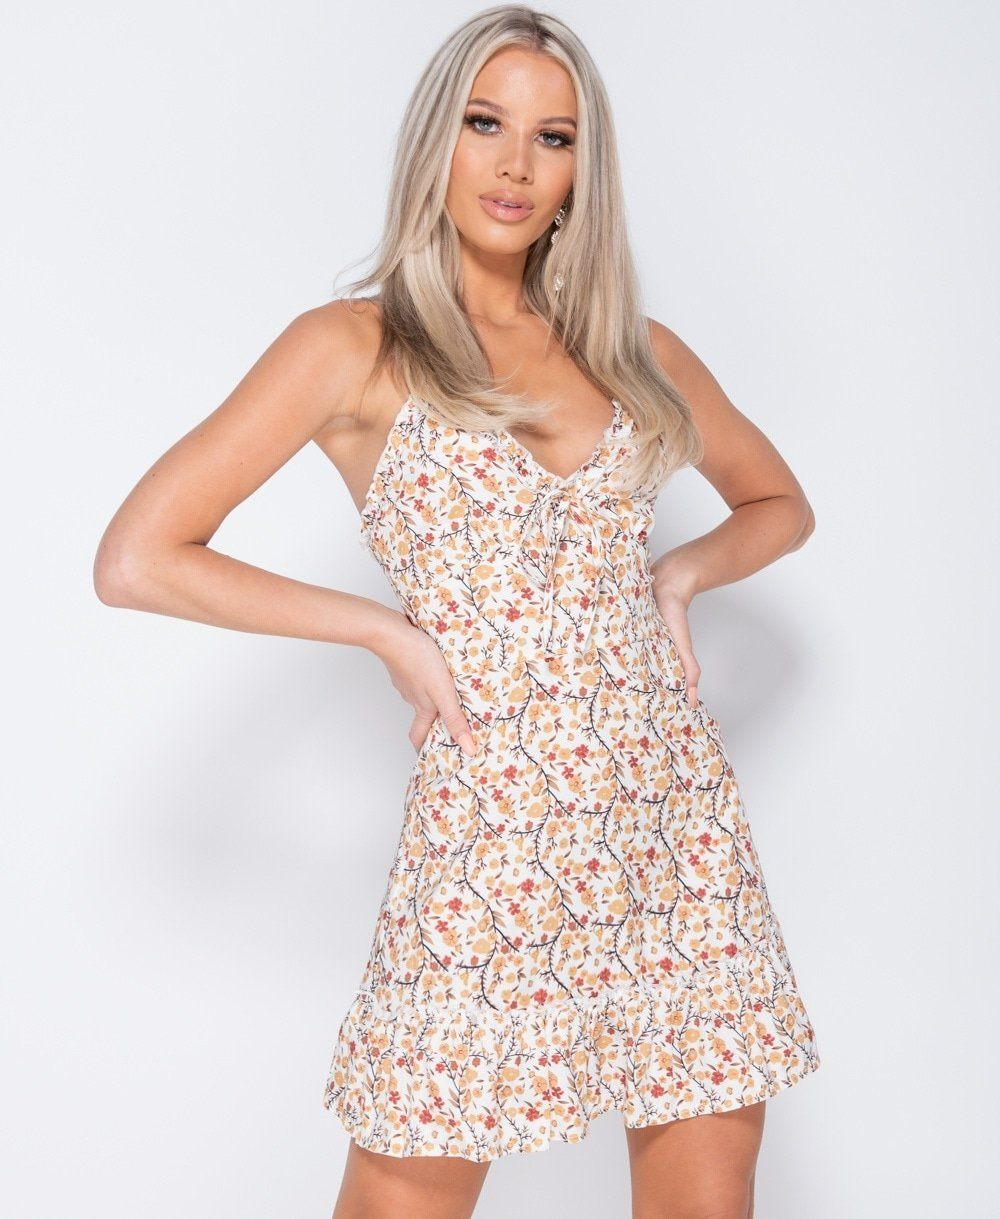 Spaghetti Strap Ditsy Floral Tie Front Mini Dress -  Dollhouse-Collection